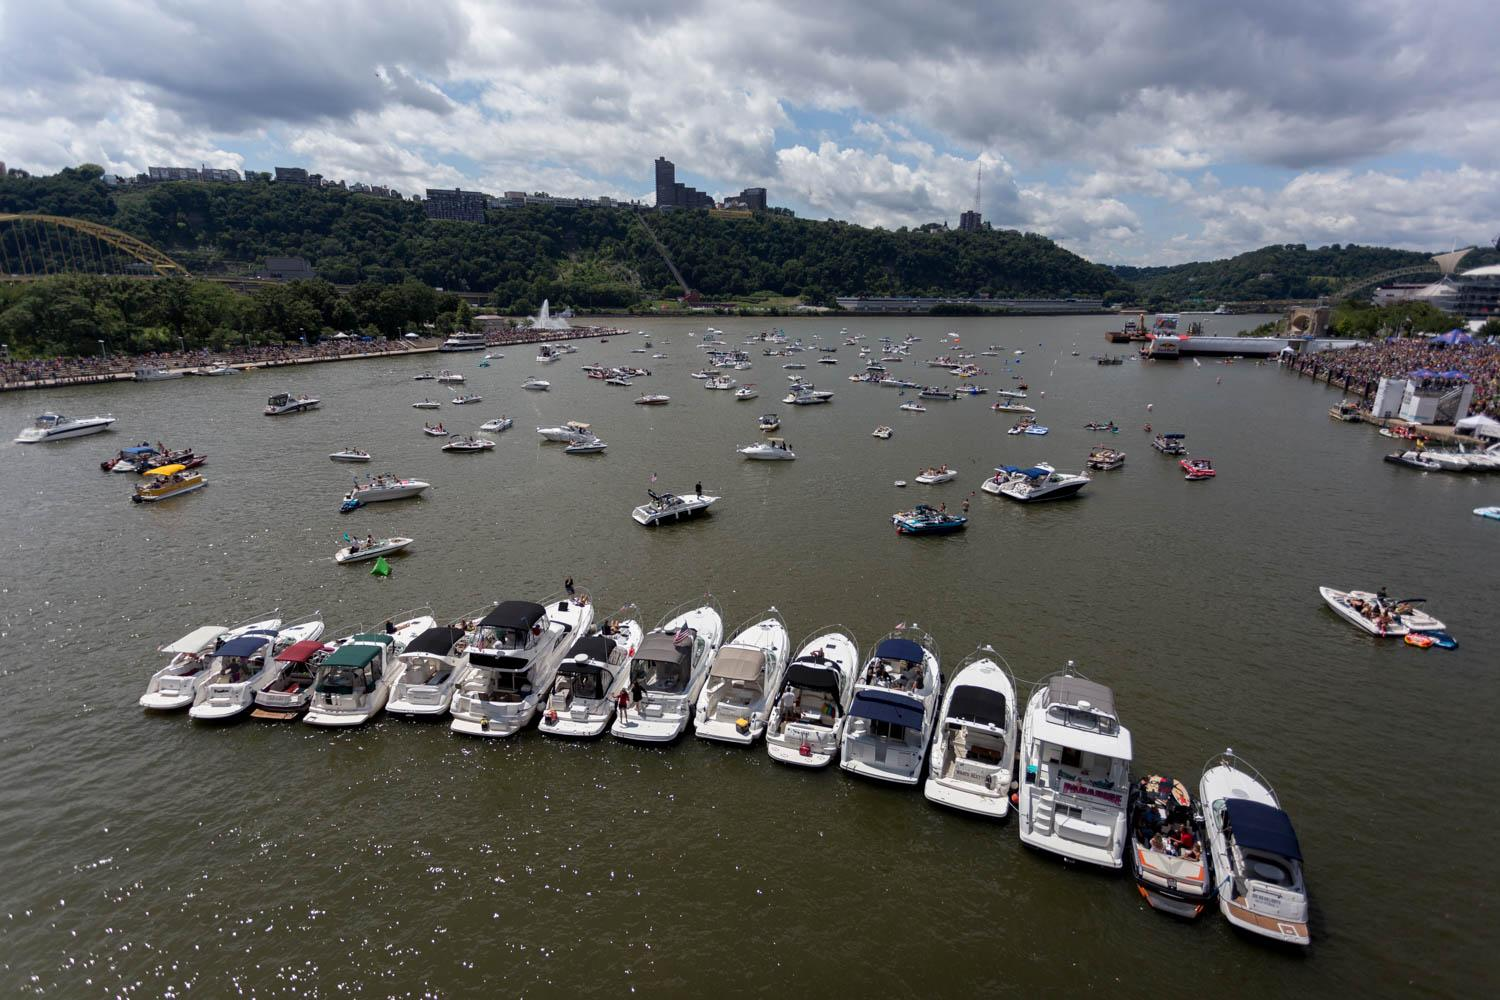 Spectators watch the Red Bull Flugtag from the North Shore, Point State Park and boats on the Allegheny River. (Photo by John Hamilton)